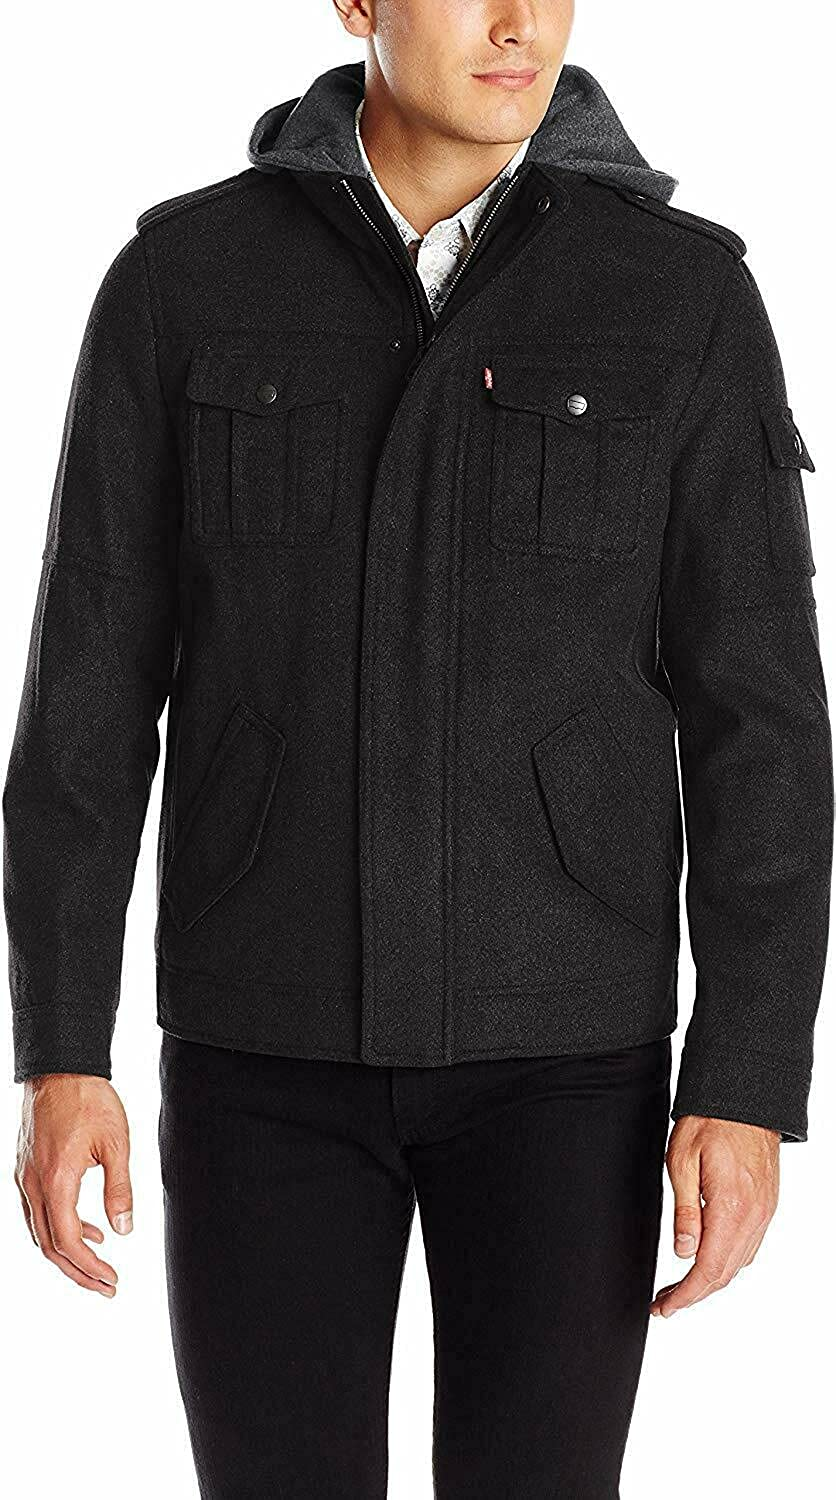 Max 60% OFF Levi's BLACK Men's Wool Blend Seattle Mall Jacket Military M Hooded